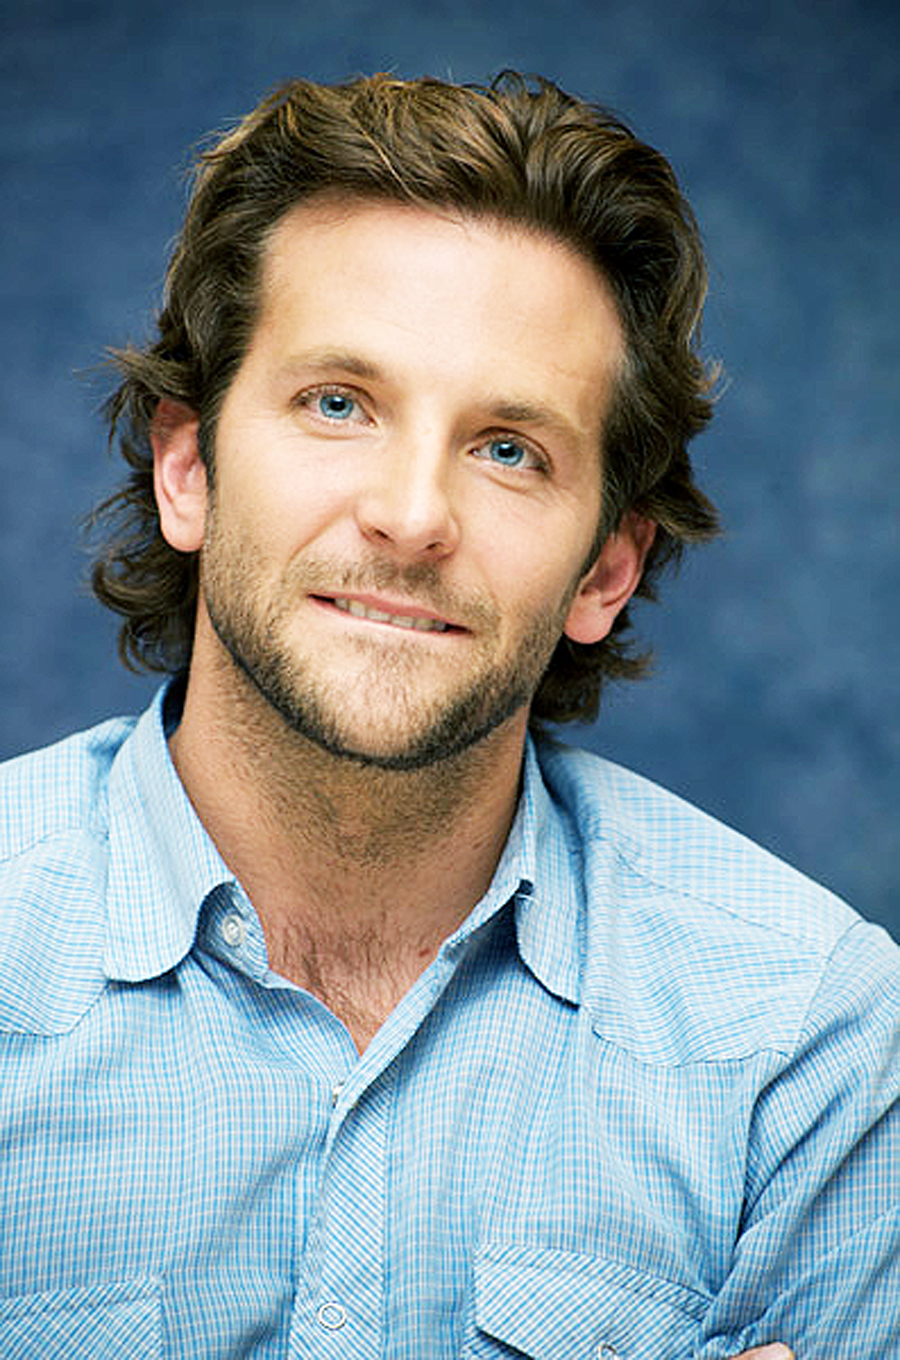 Bradley Cooper Hd Wallpapers High Definition Free